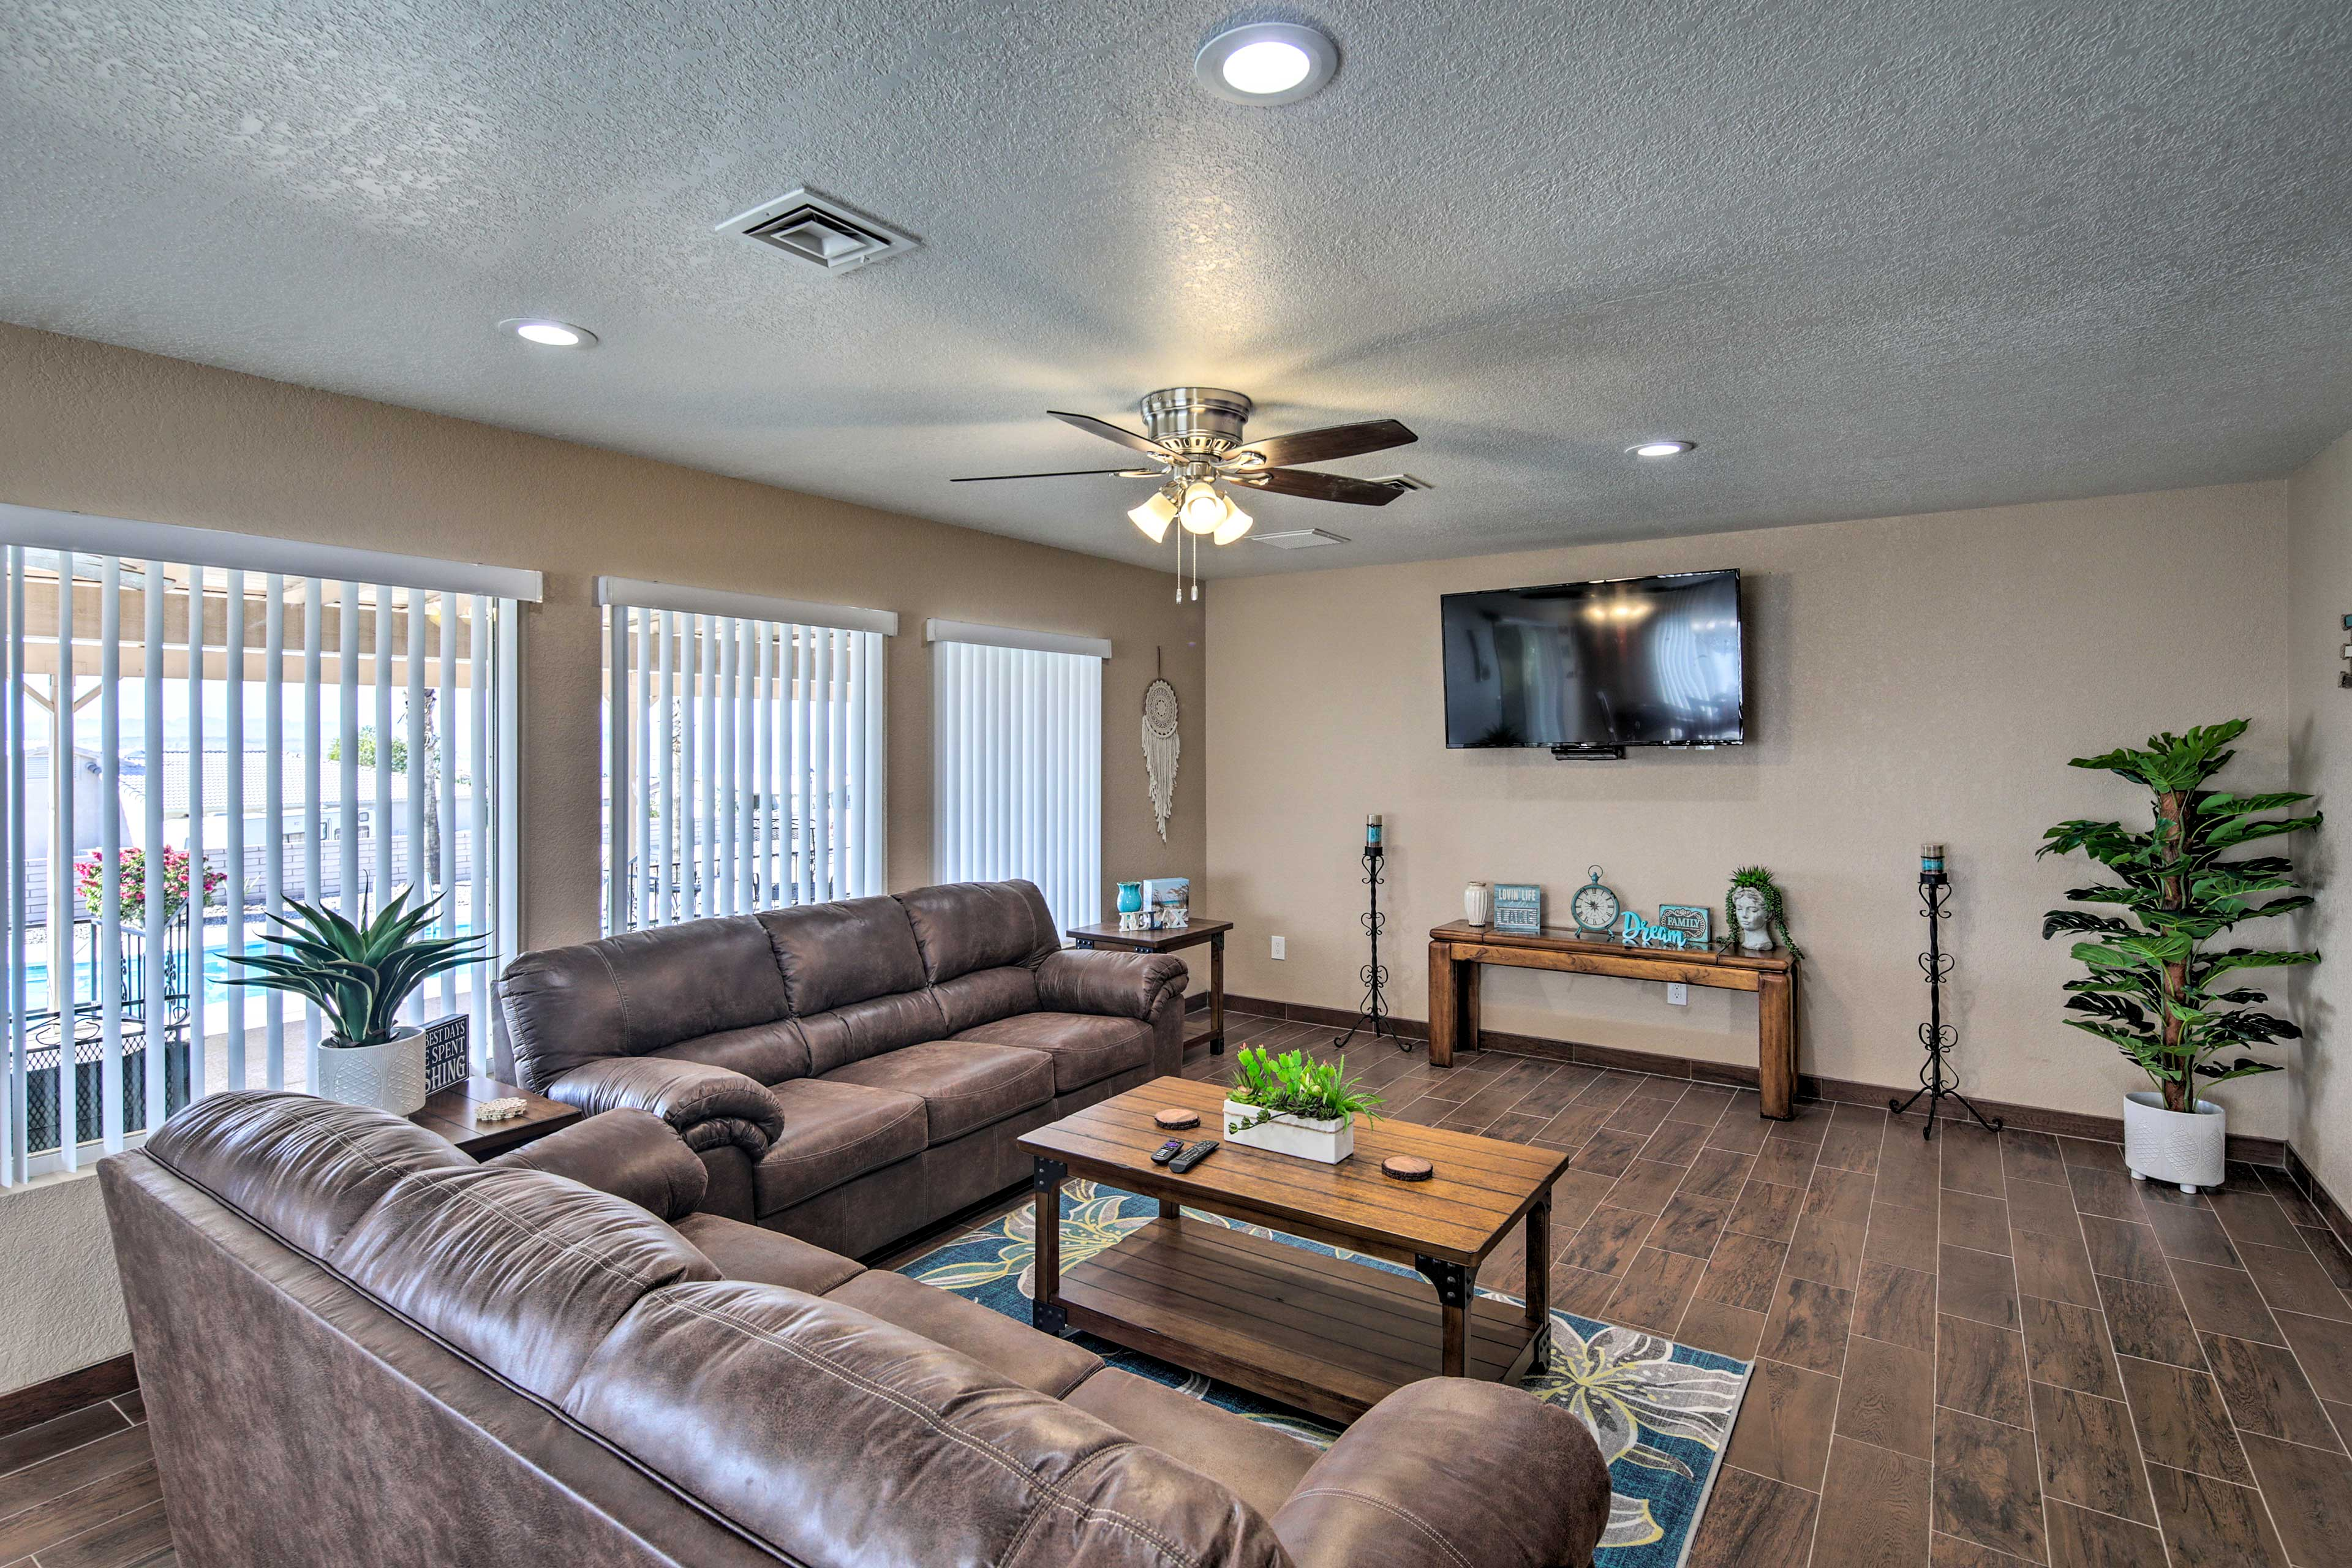 This well-appointed abode offers all the comforts of home and more!